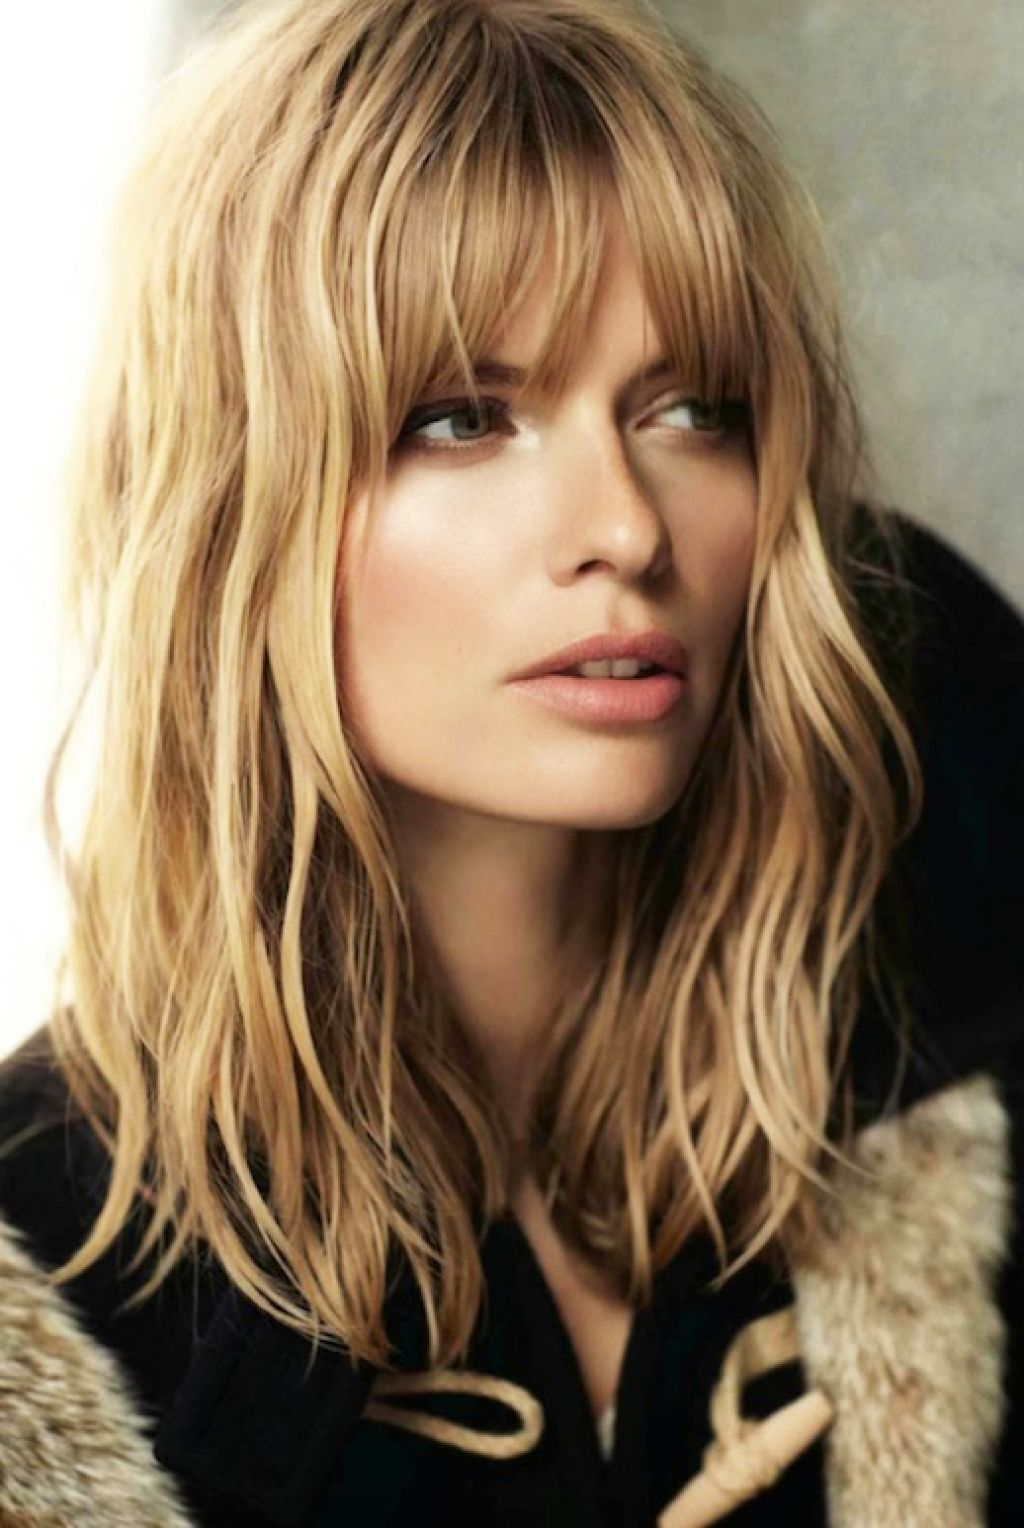 hairstyles with bangs best for your face shape wavy | hair cuts